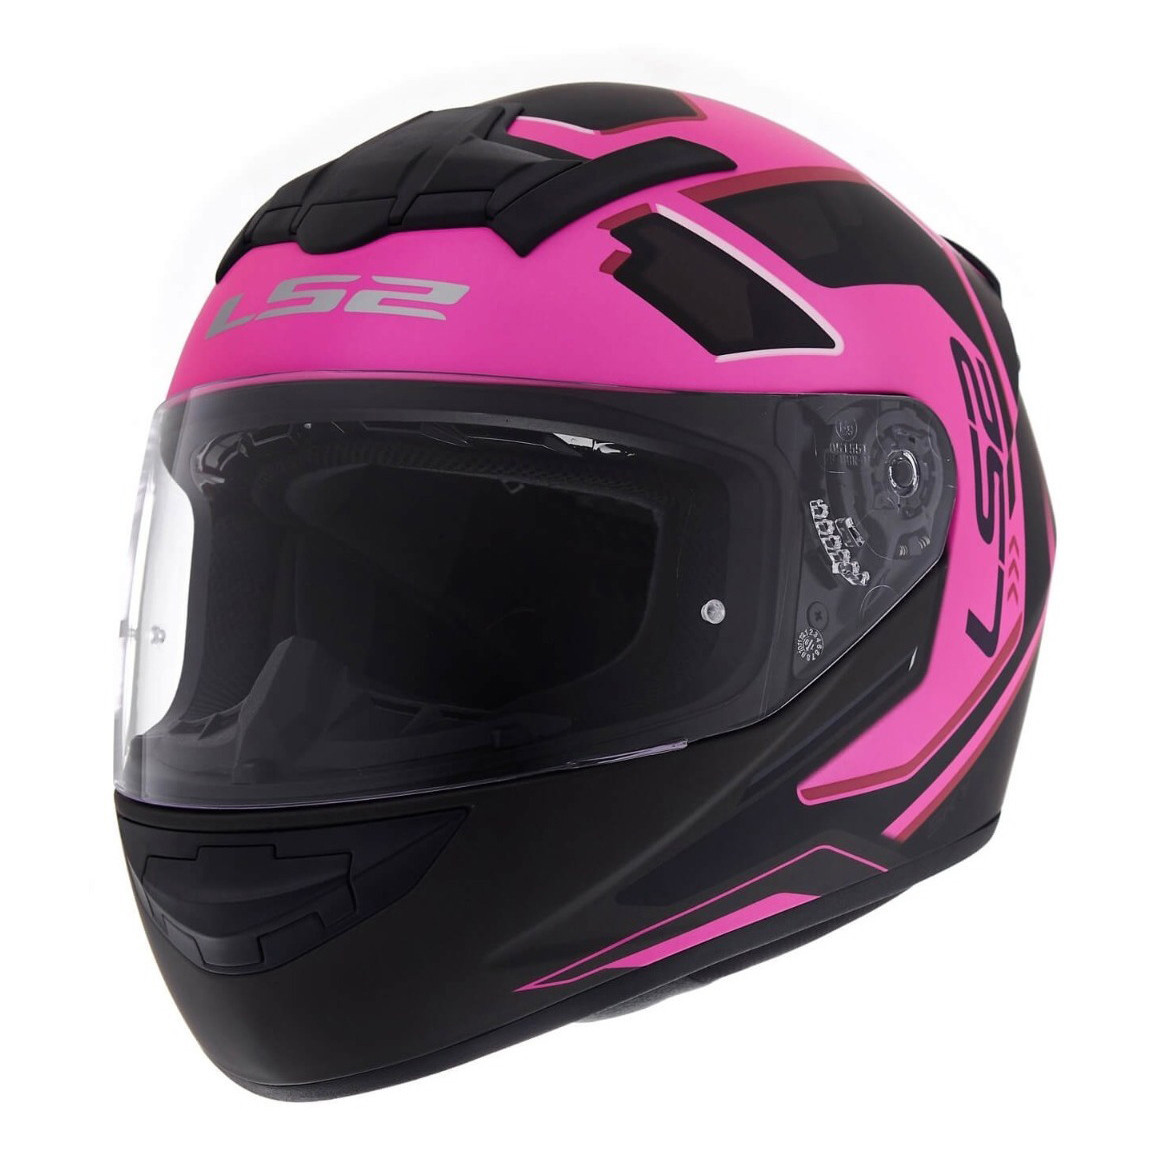 Casco Integral Ls2 Ff 352 Iron Face Rosa Negro Mate